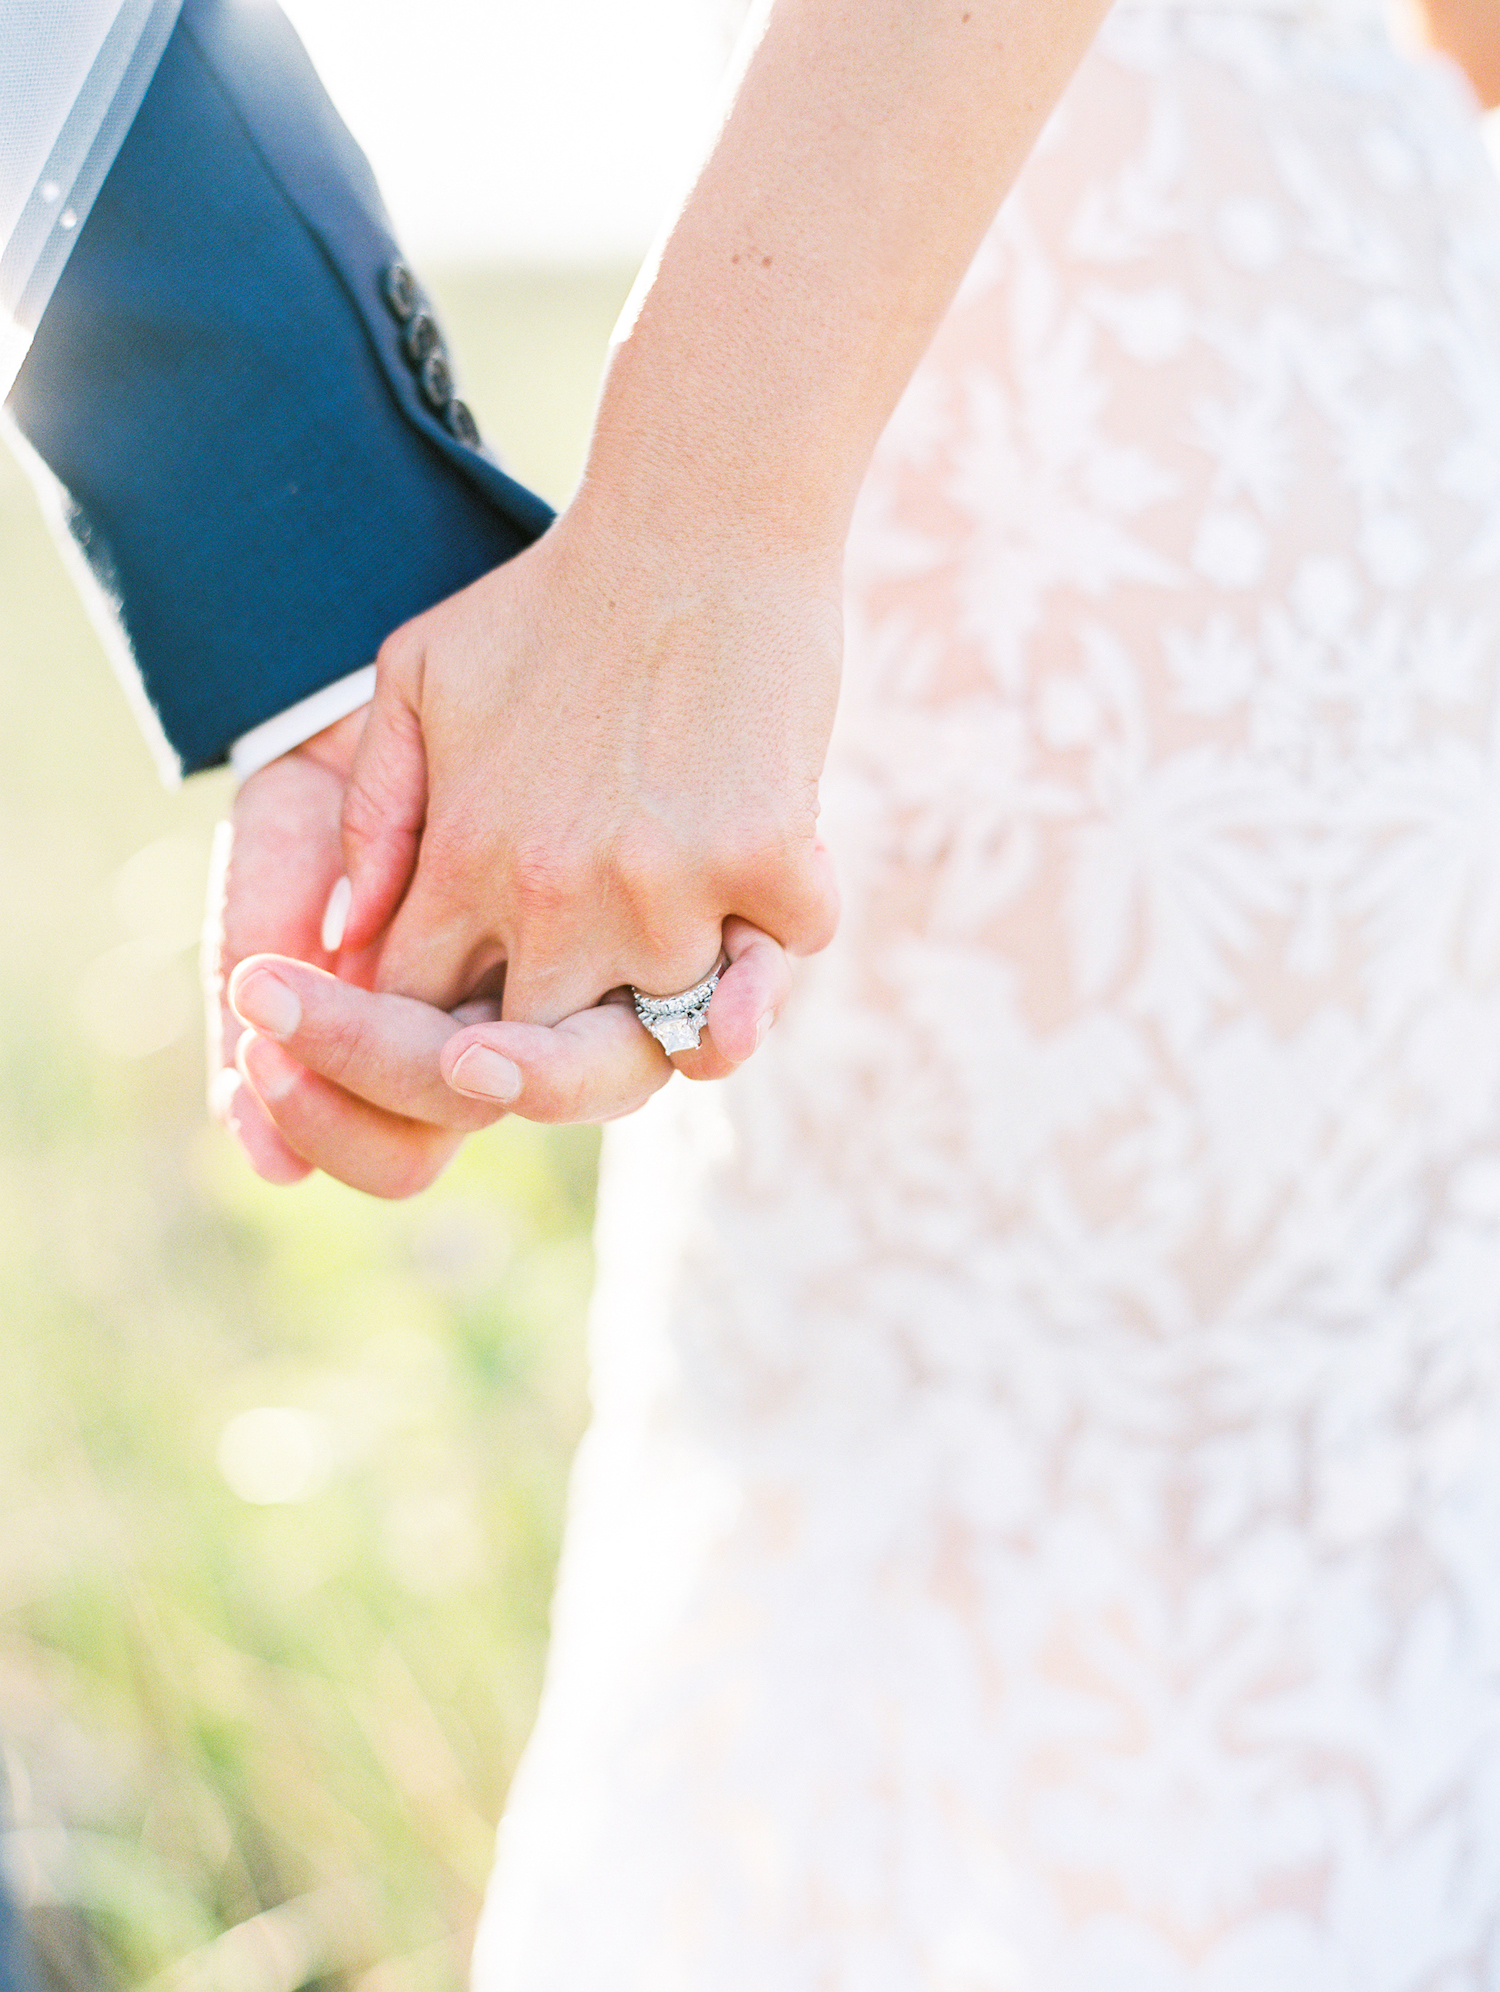 Holding hands at apple blossom resort wedding